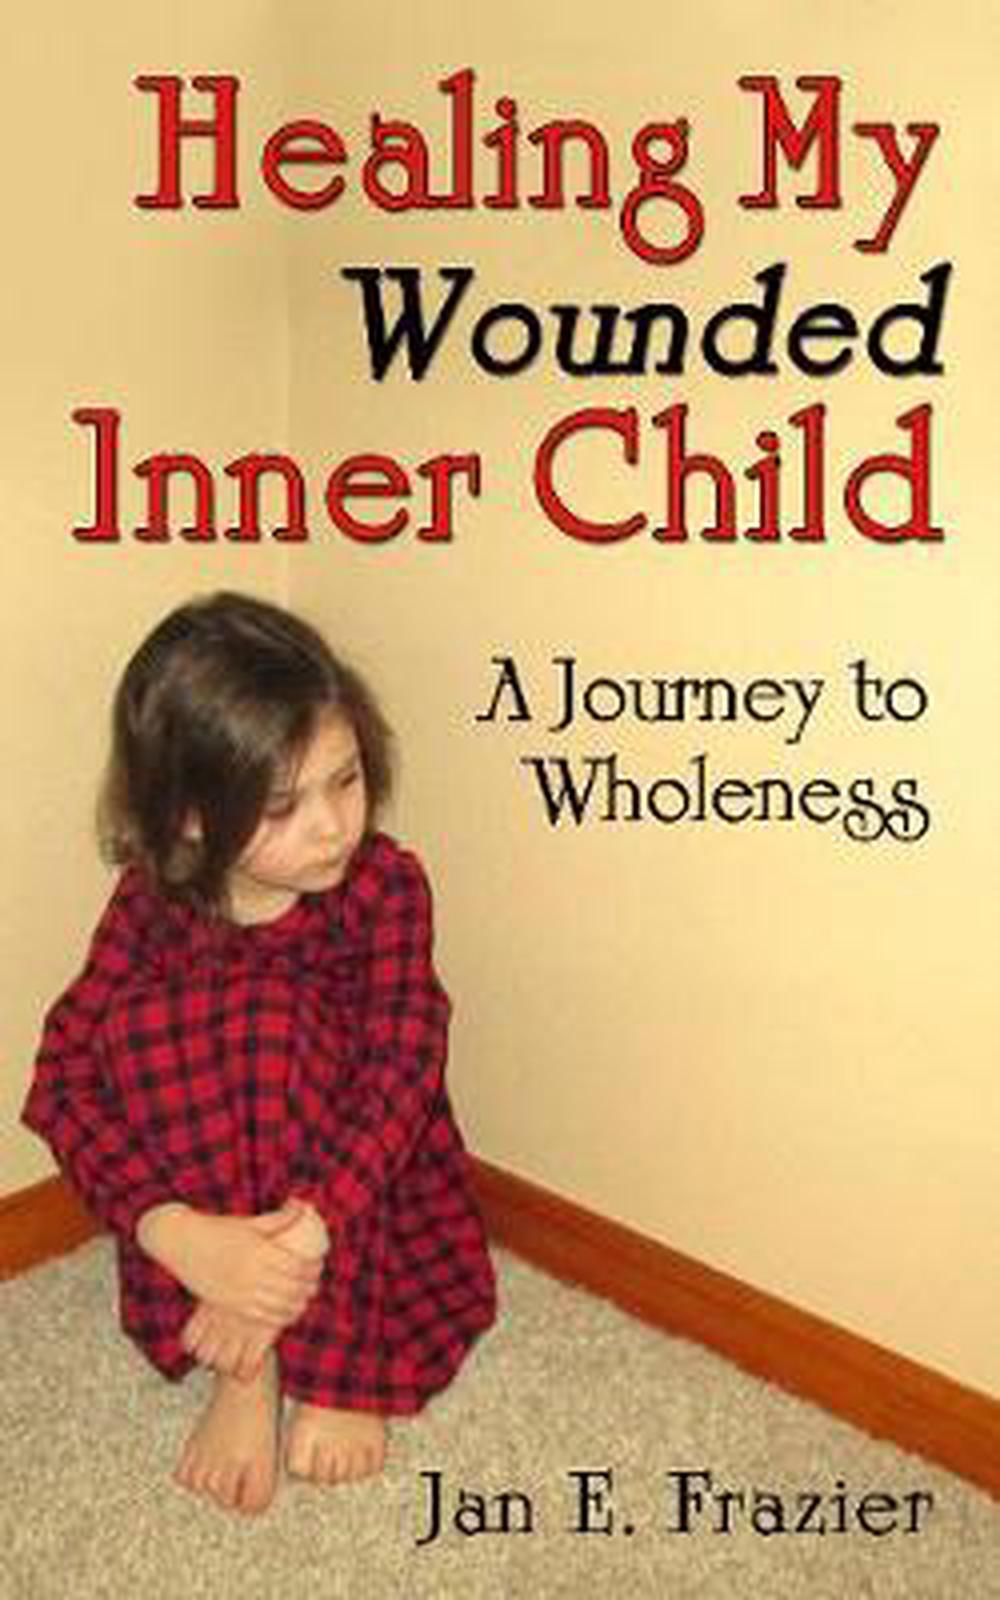 Healing My Wounded Inner Child: A Journey to Wholeness